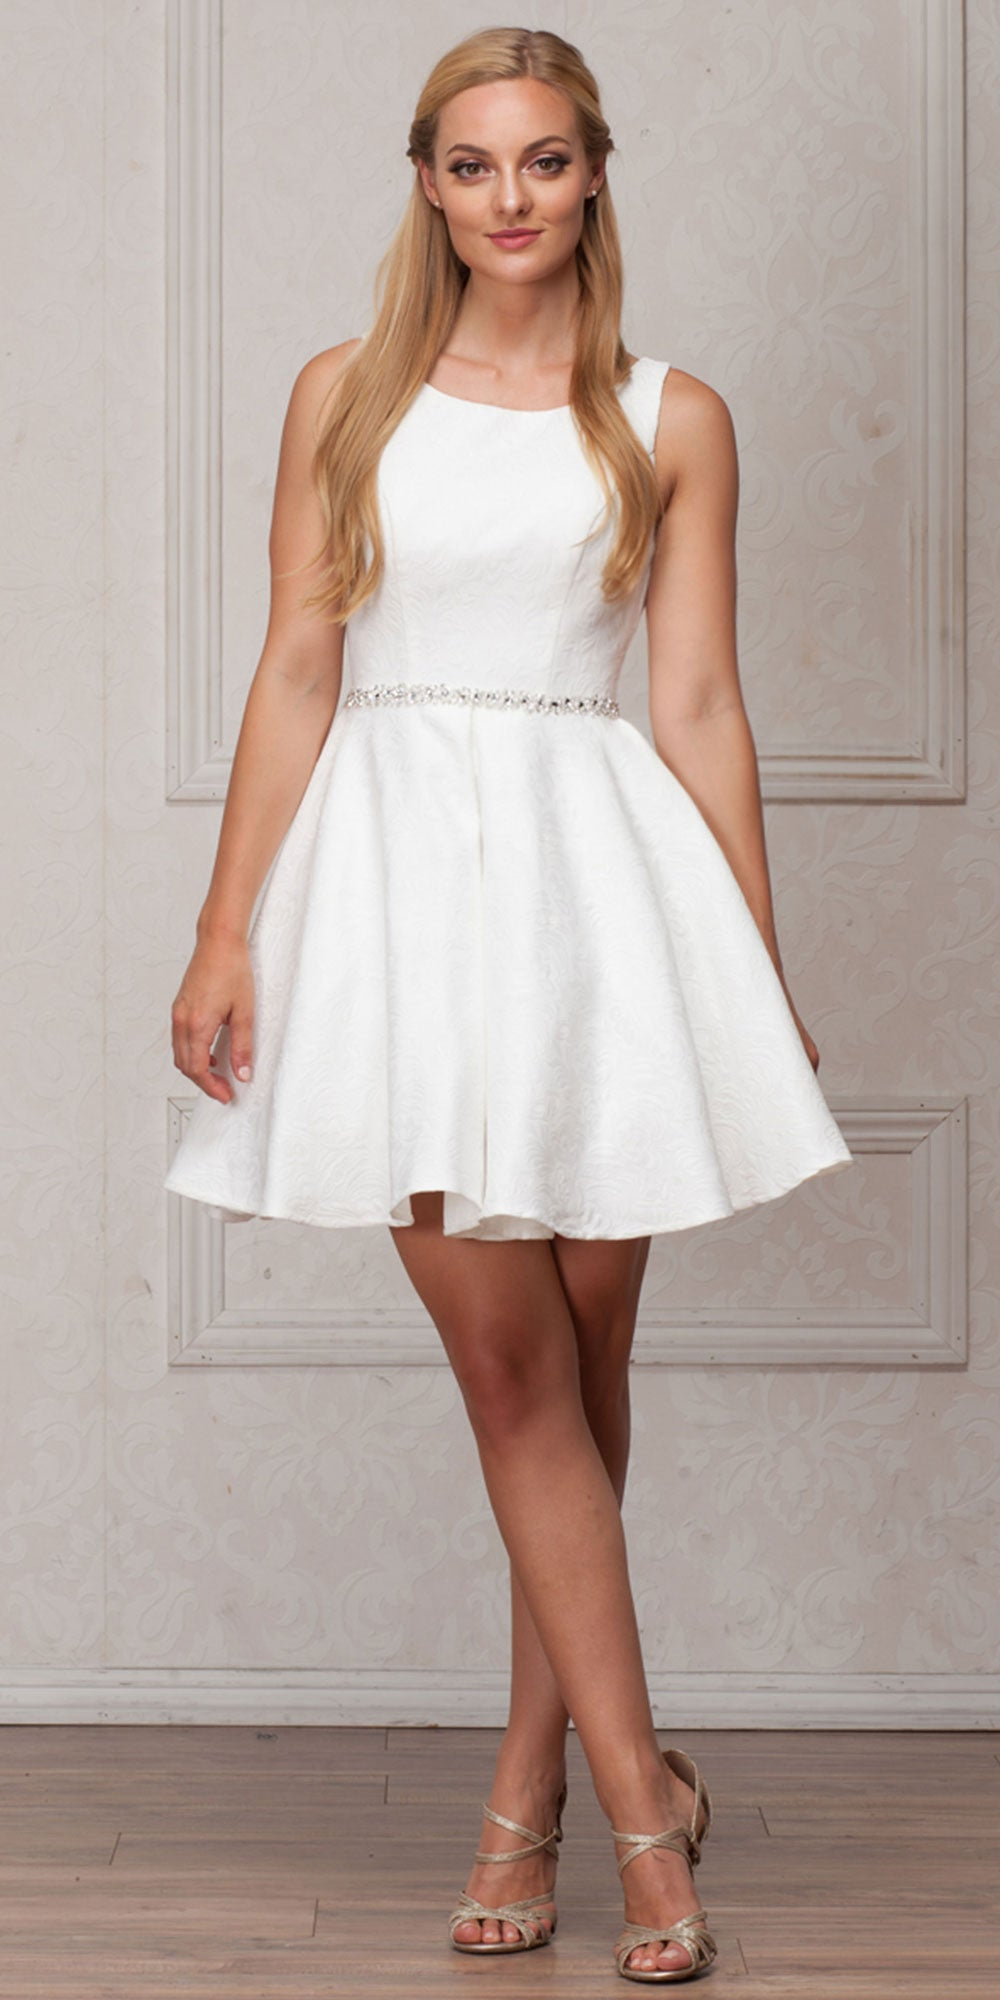 Image of Boat Neck Jewel Waist Pleated Puffy Skirt Short Party Dress in Ivory